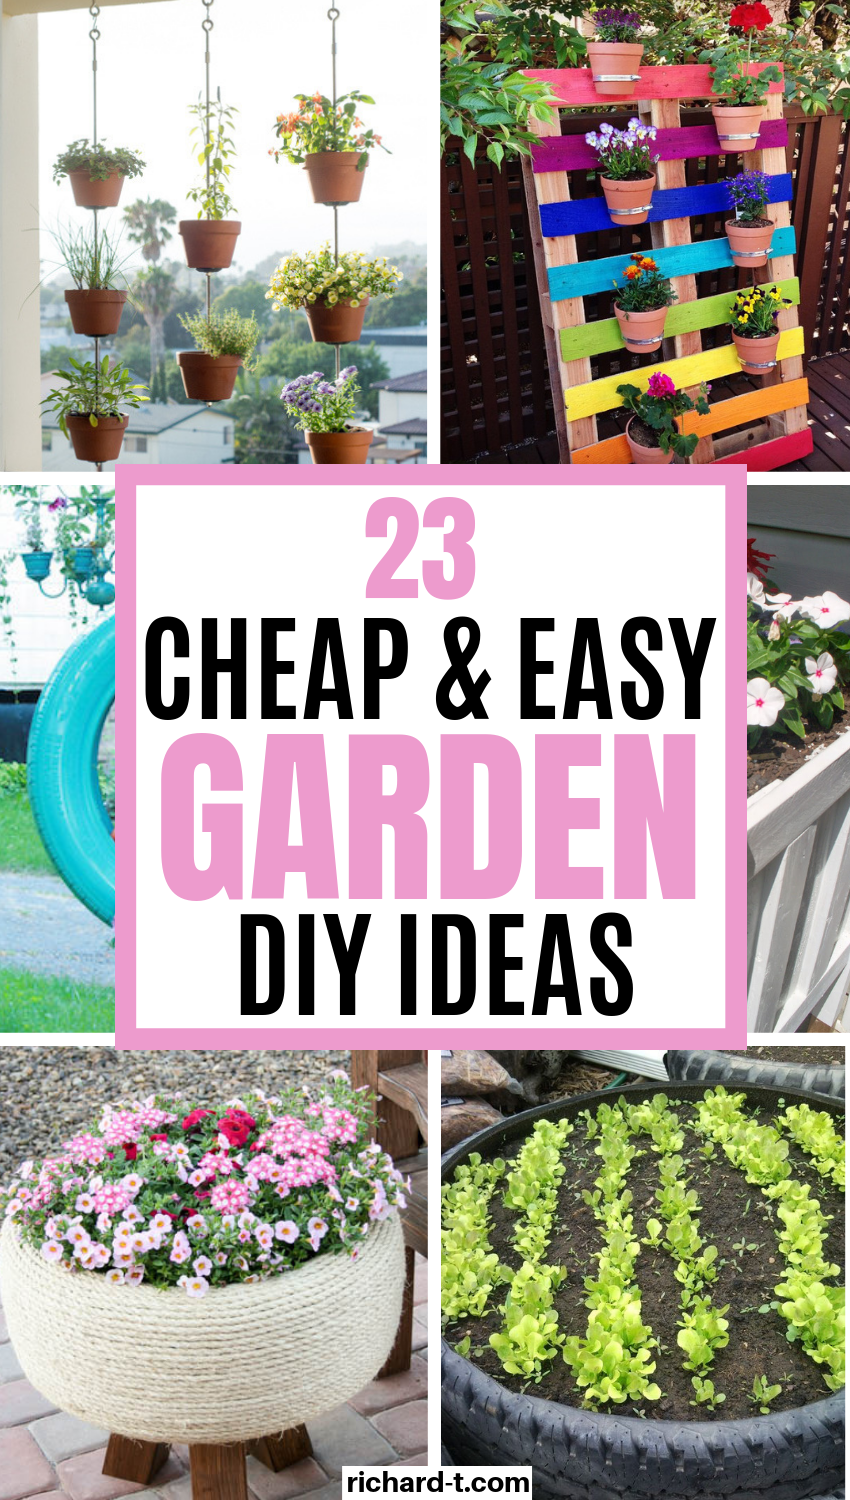 23 Diy Gardening Ideas Which Will Turn Your Garden Into A Paradise